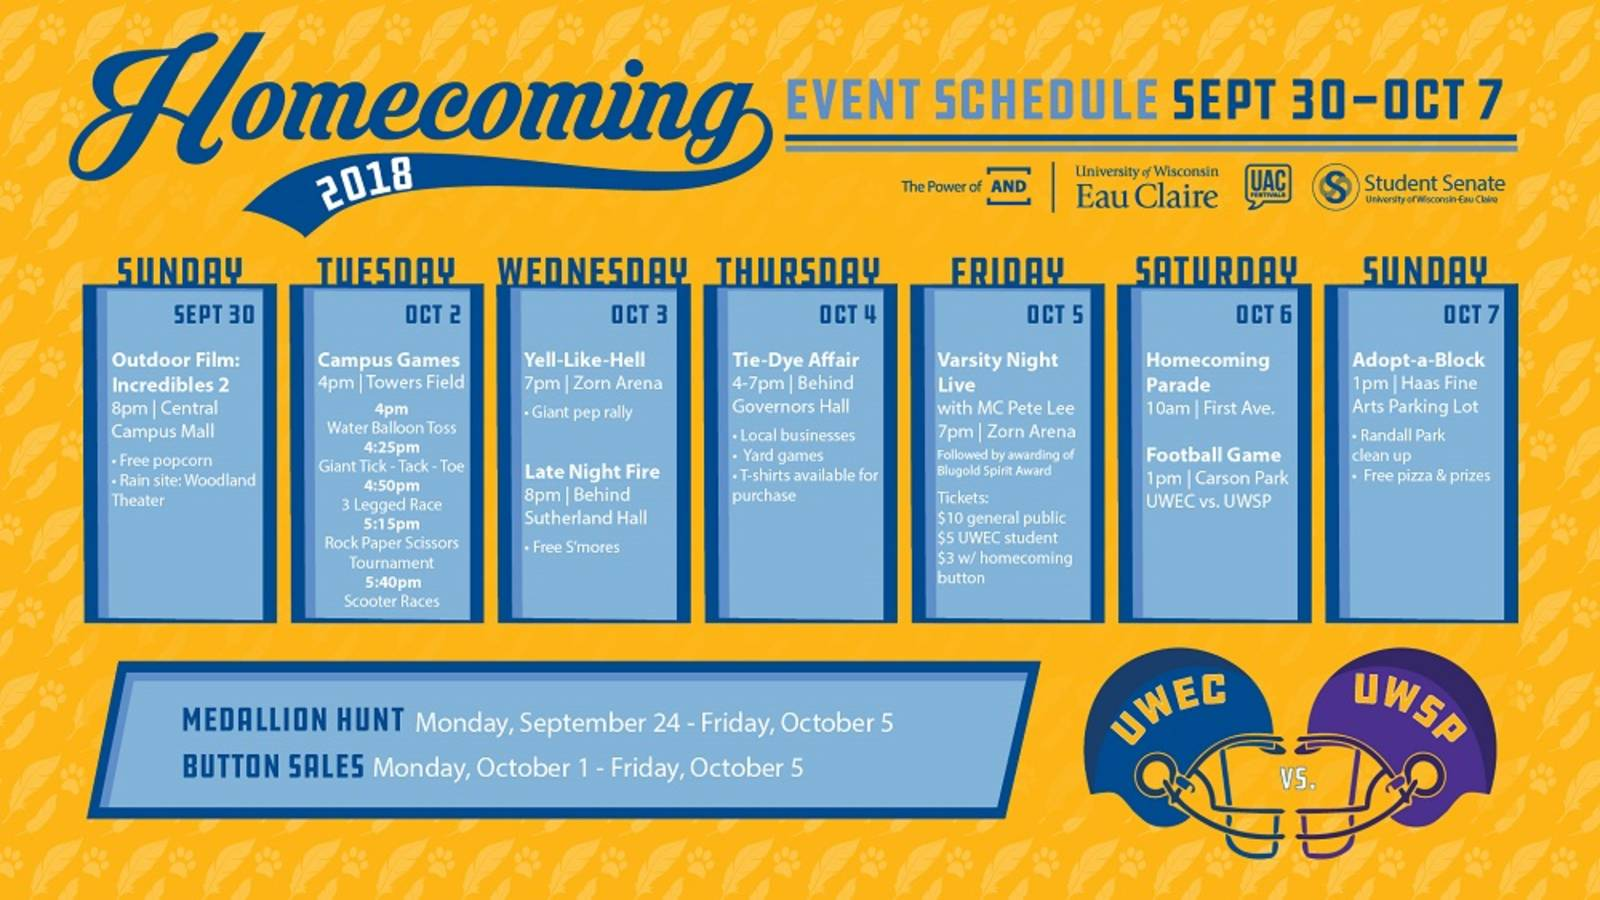 Homecoming Schedule 2018